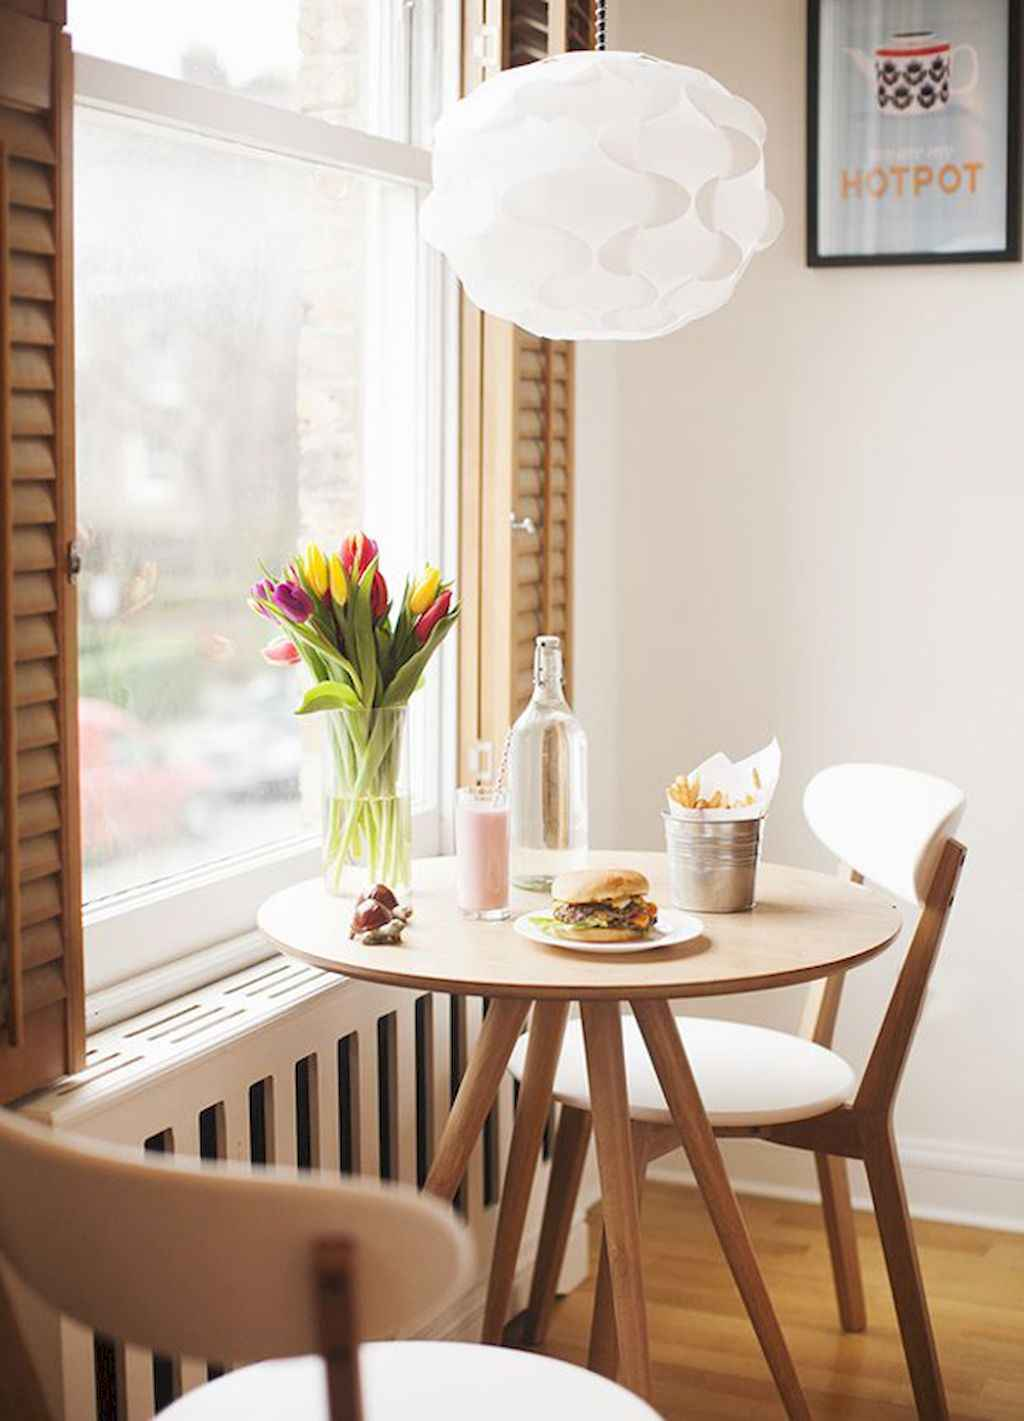 130 small and clean first apartment dining room ideas